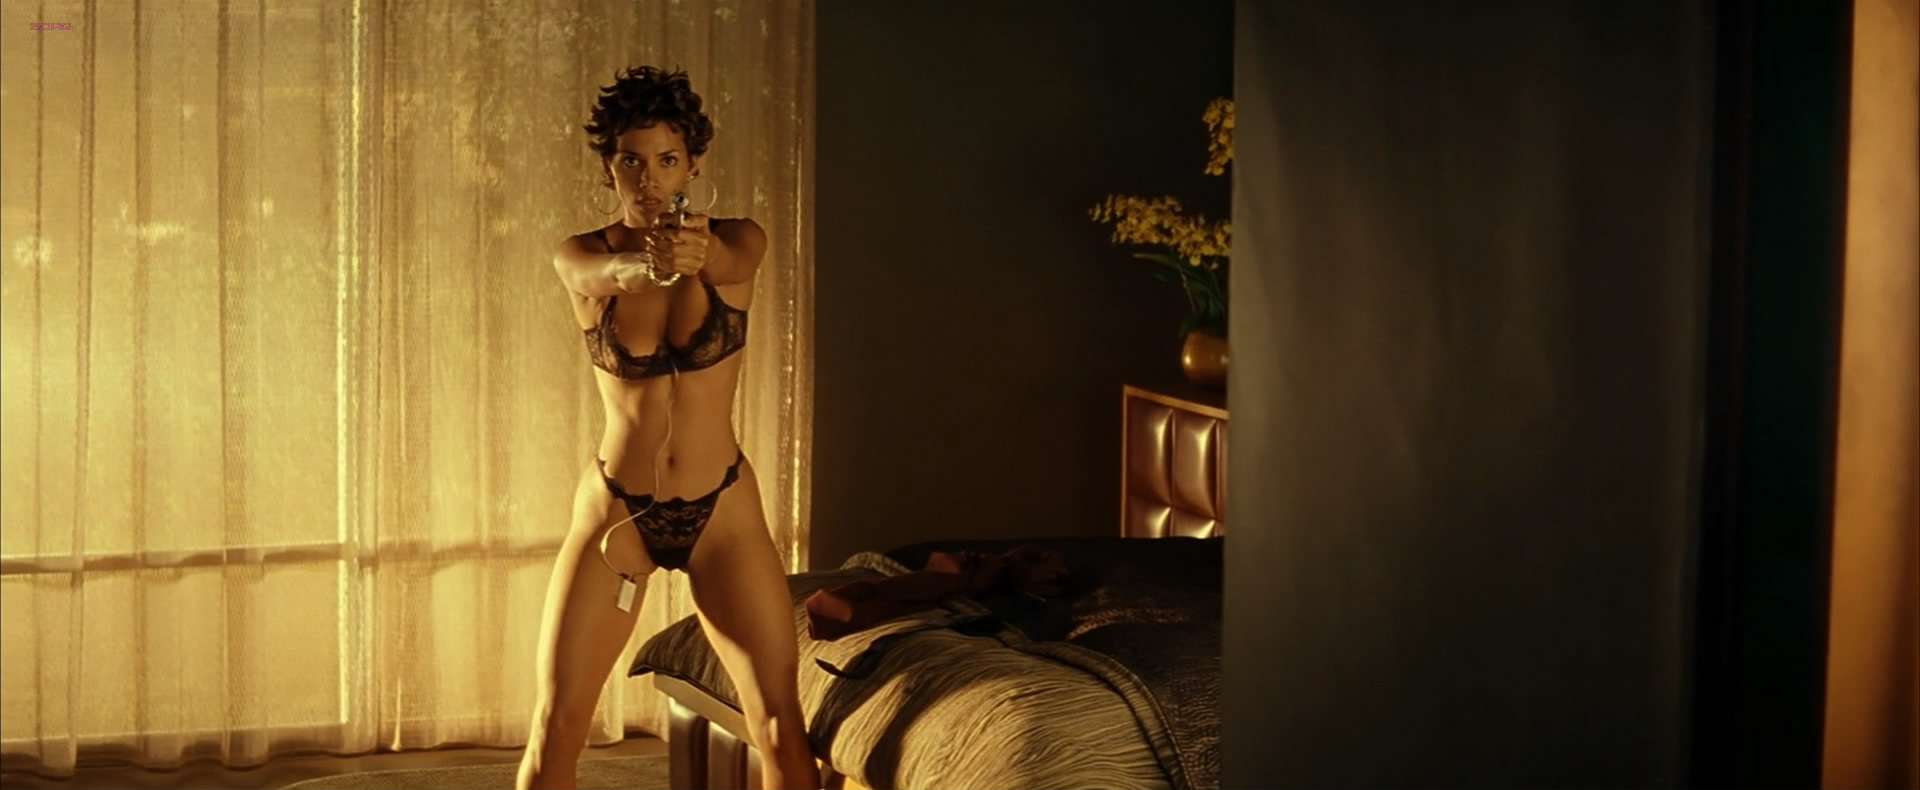 Halle berry nude scene swordfish opinion you